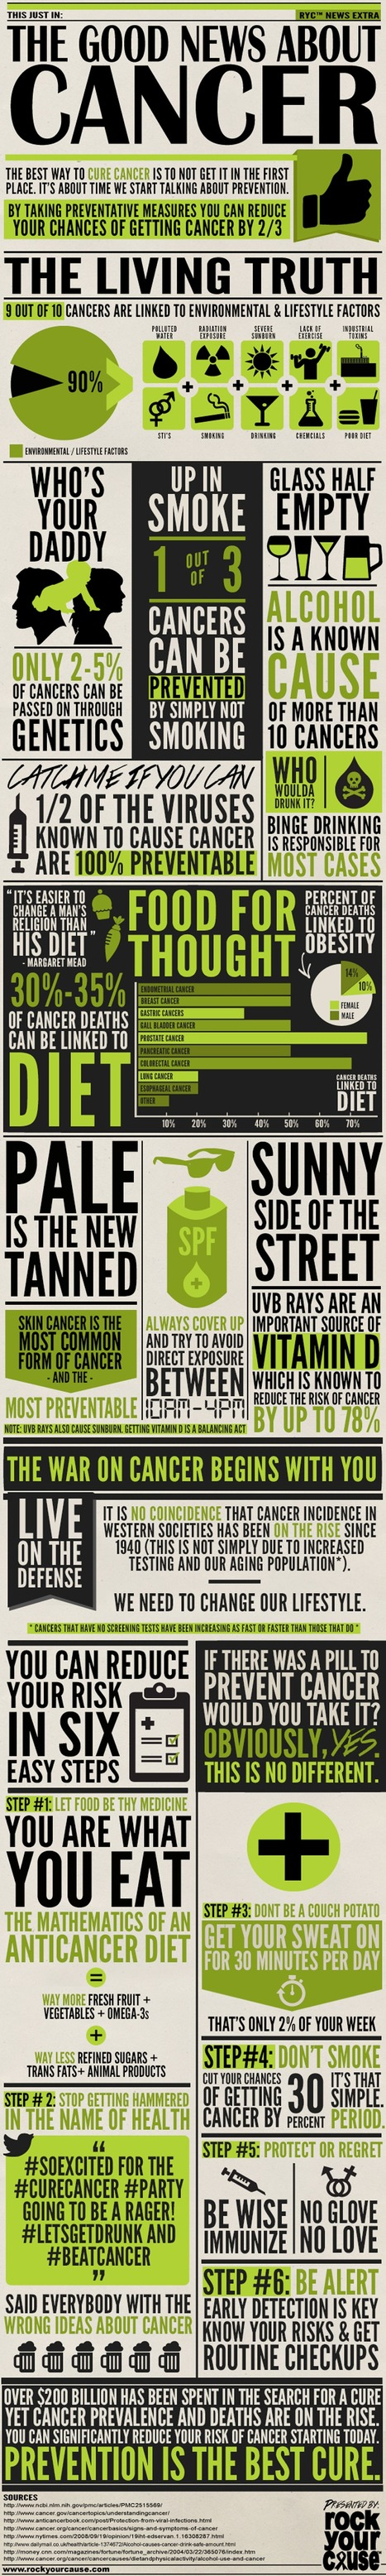 Good News About Cancer Infographic | Everything Infographic | Scoop.it